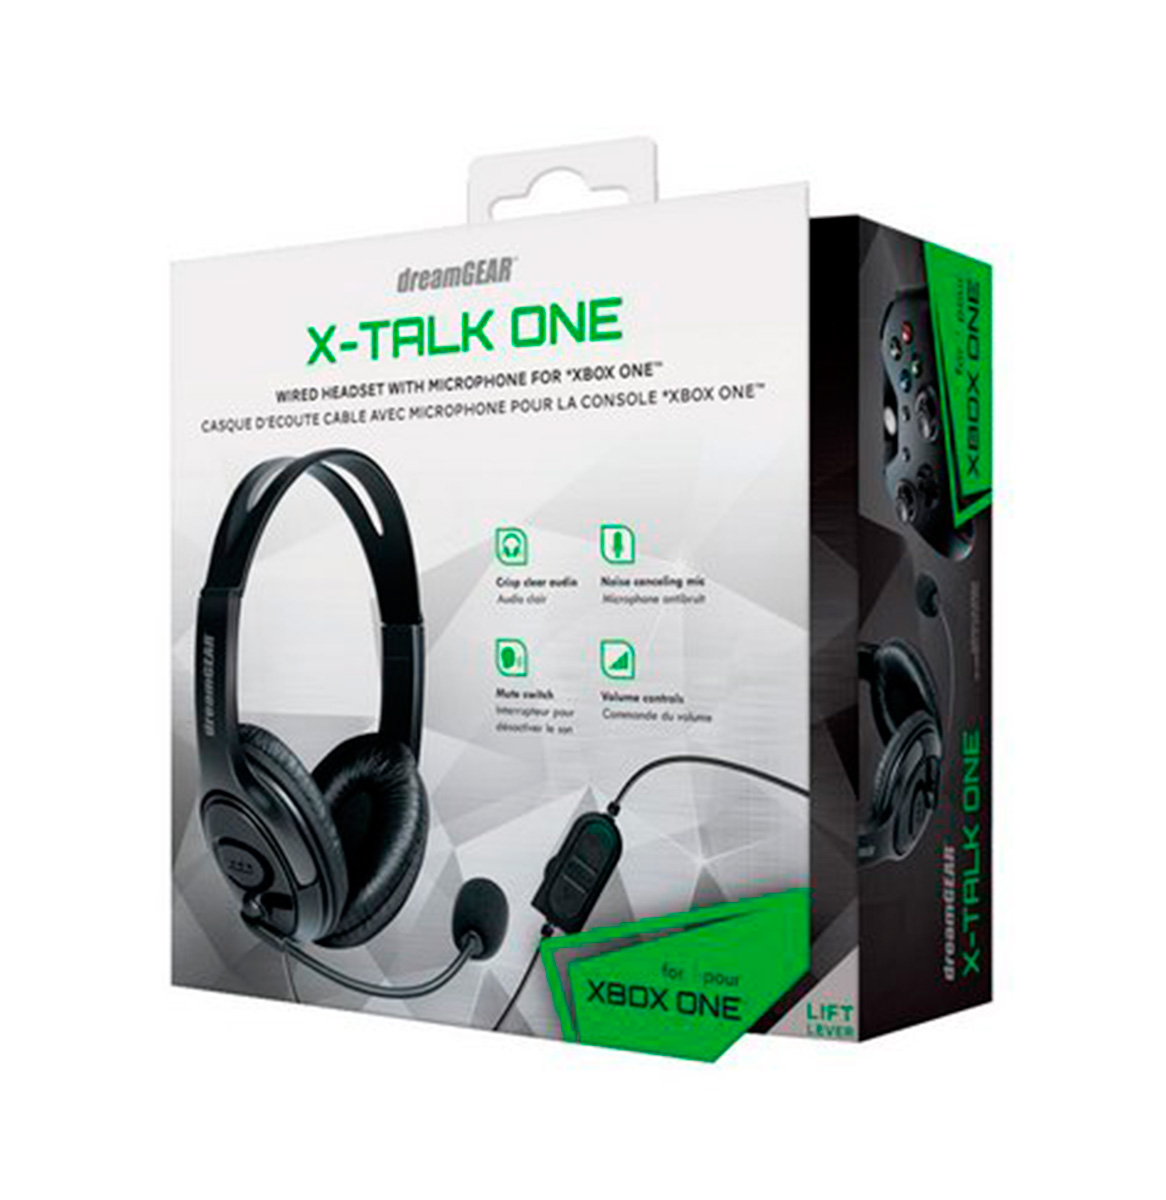 Headset X-talk One Dreamgear